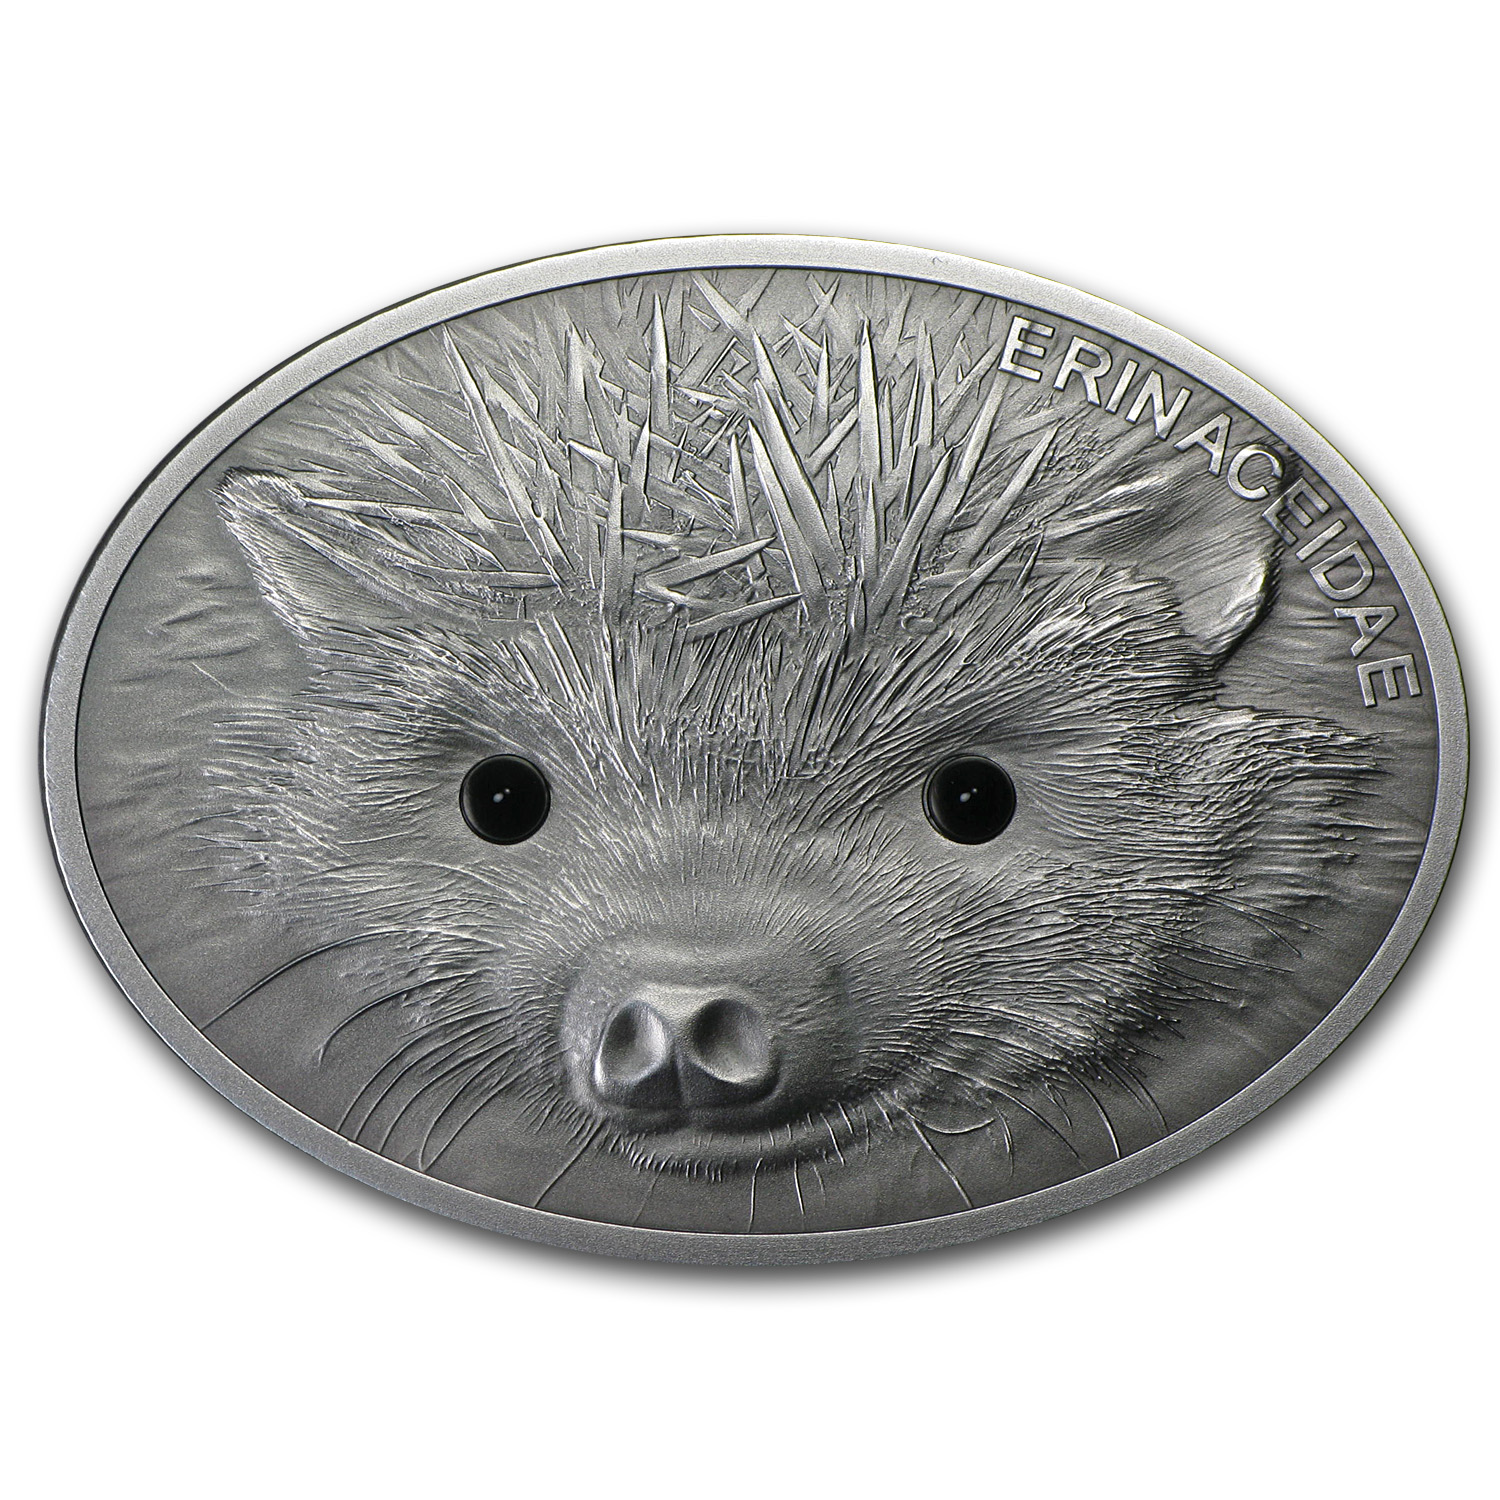 Fiji 2013 1 oz Silver $10 Fascinating Wildlife - Hedgehog